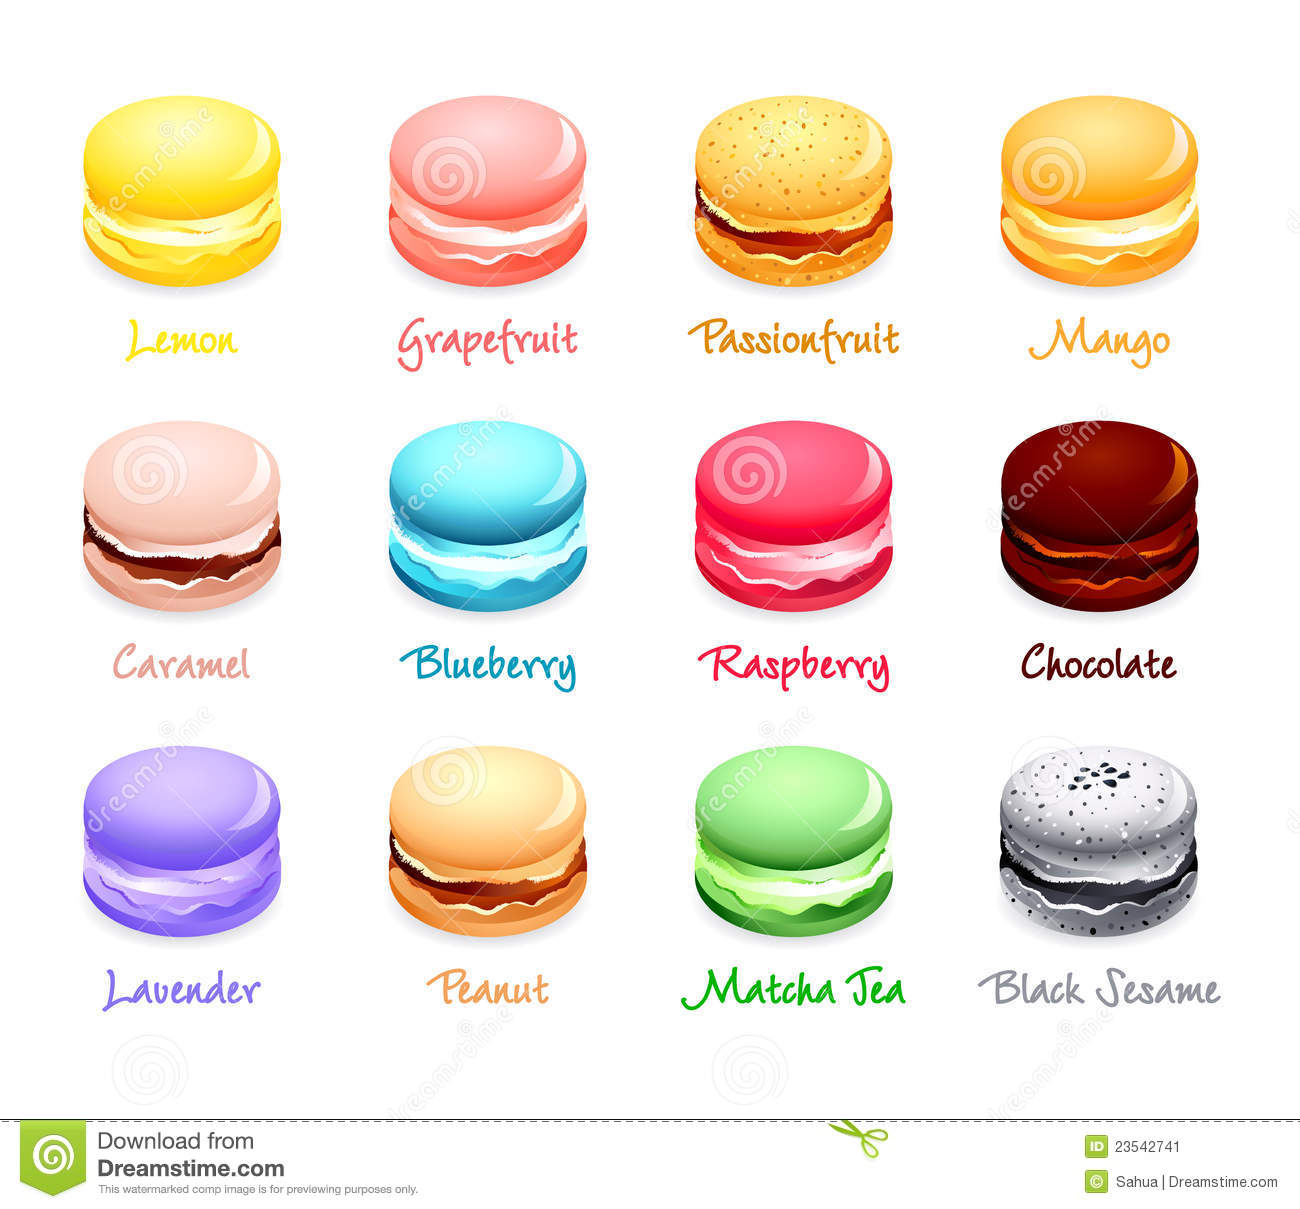 Colorful french macaron cookies with different flavors.